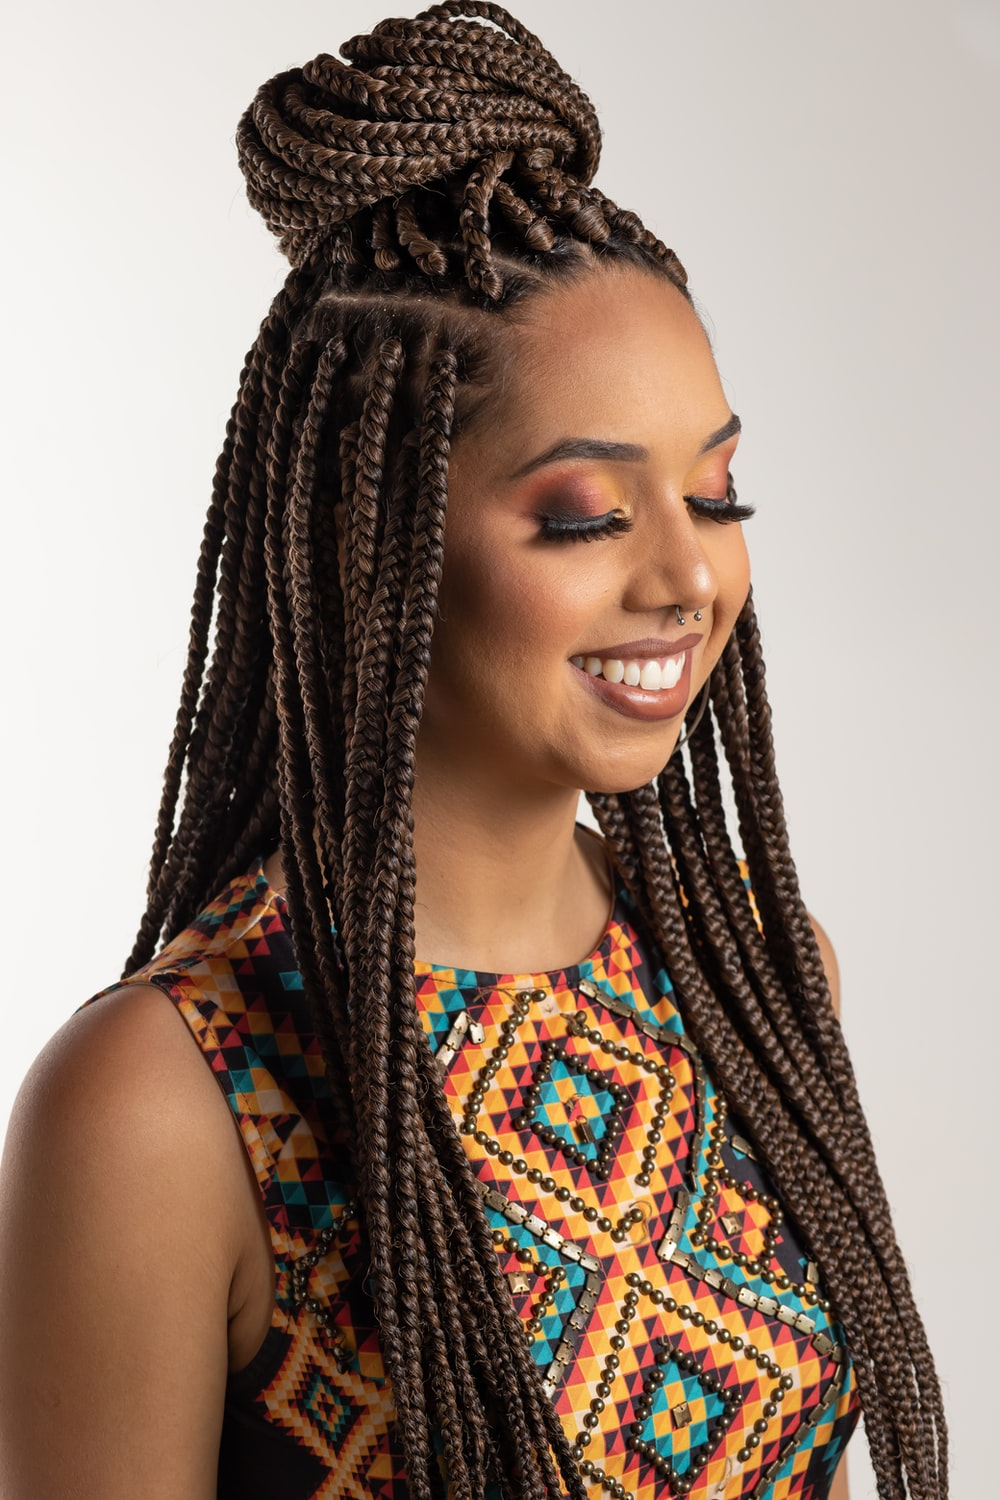 natural hairstyles woman wearing multicolored blouse and braided hair